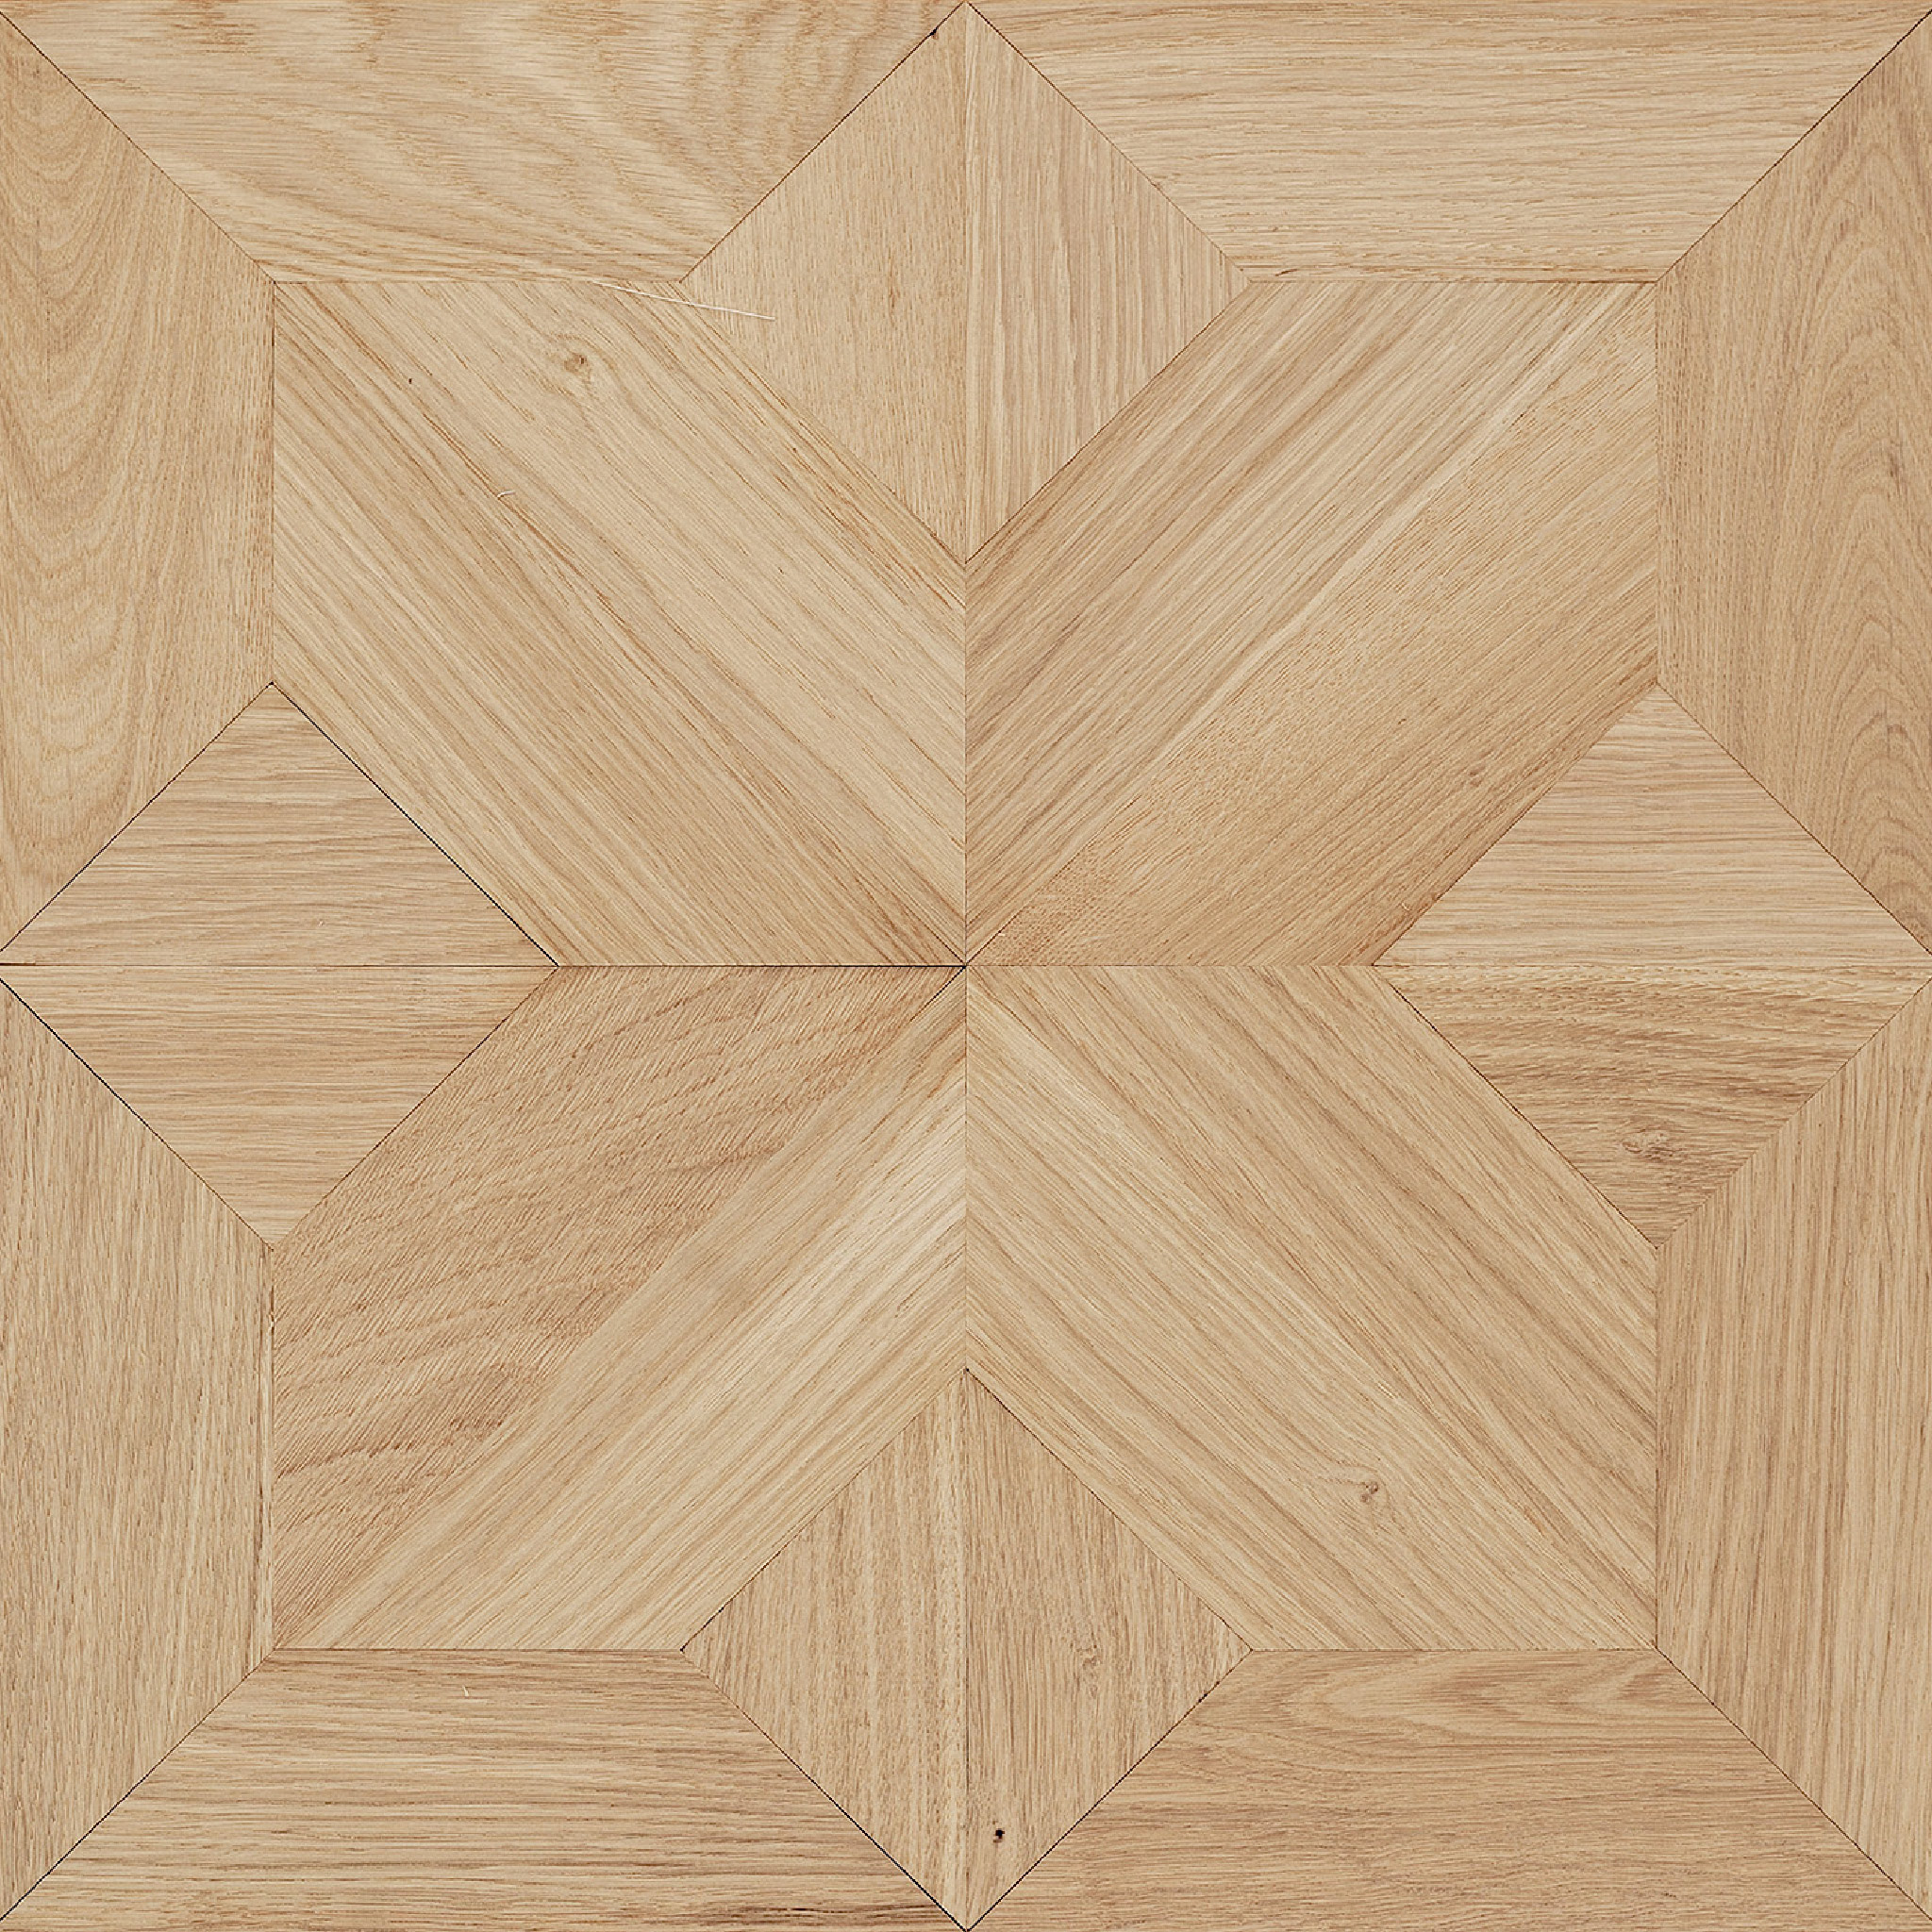 Designparquet oak firenze rustic 10mm